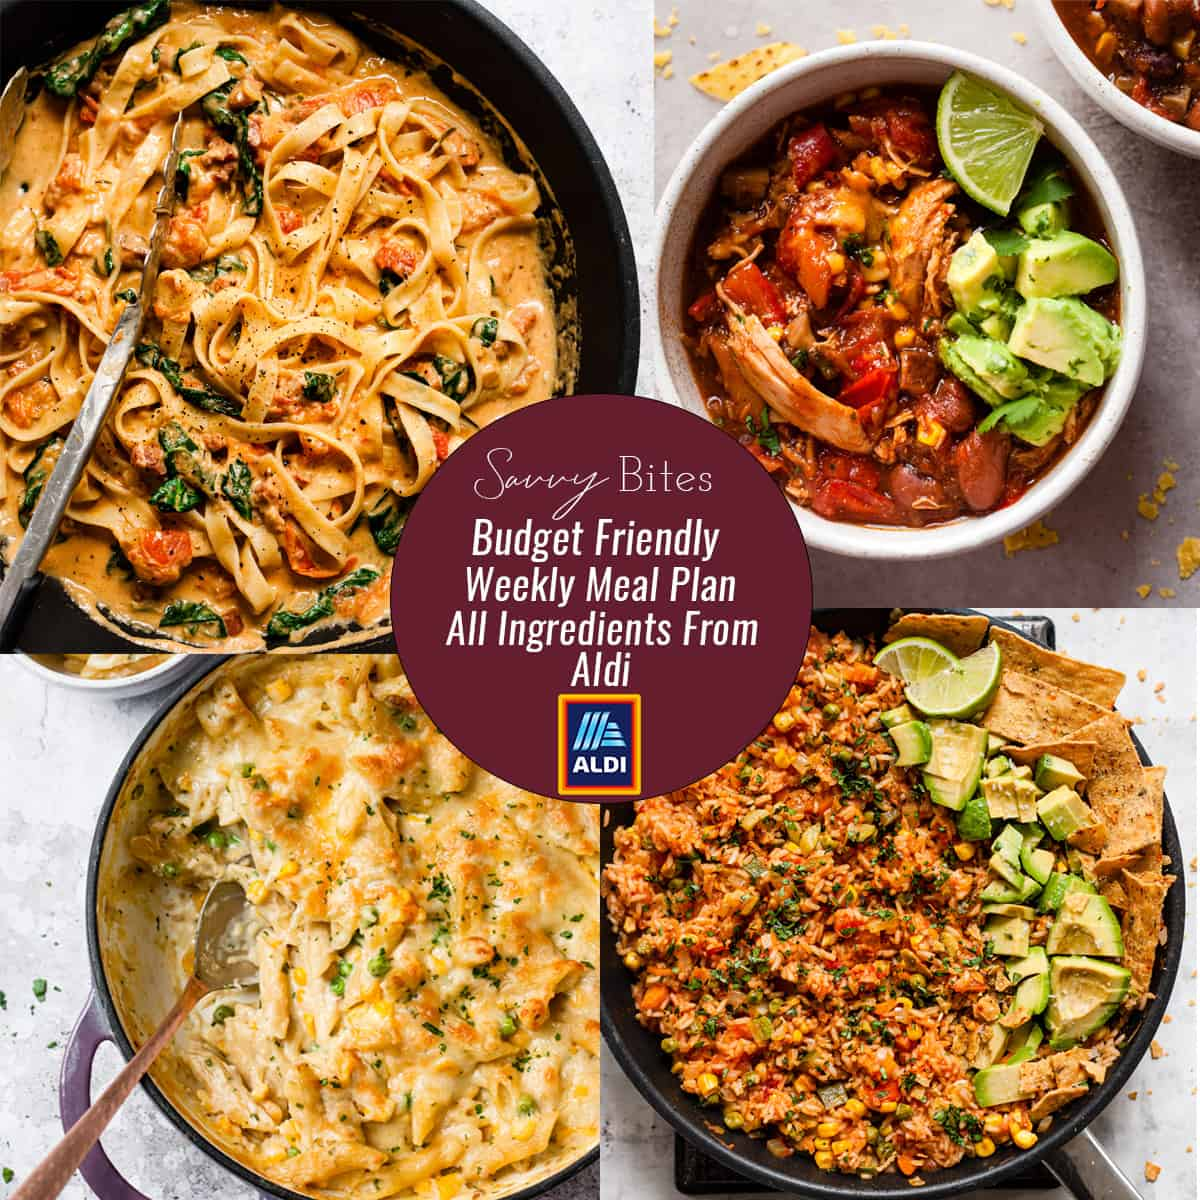 Aldi meal plan photo collage with text overlay